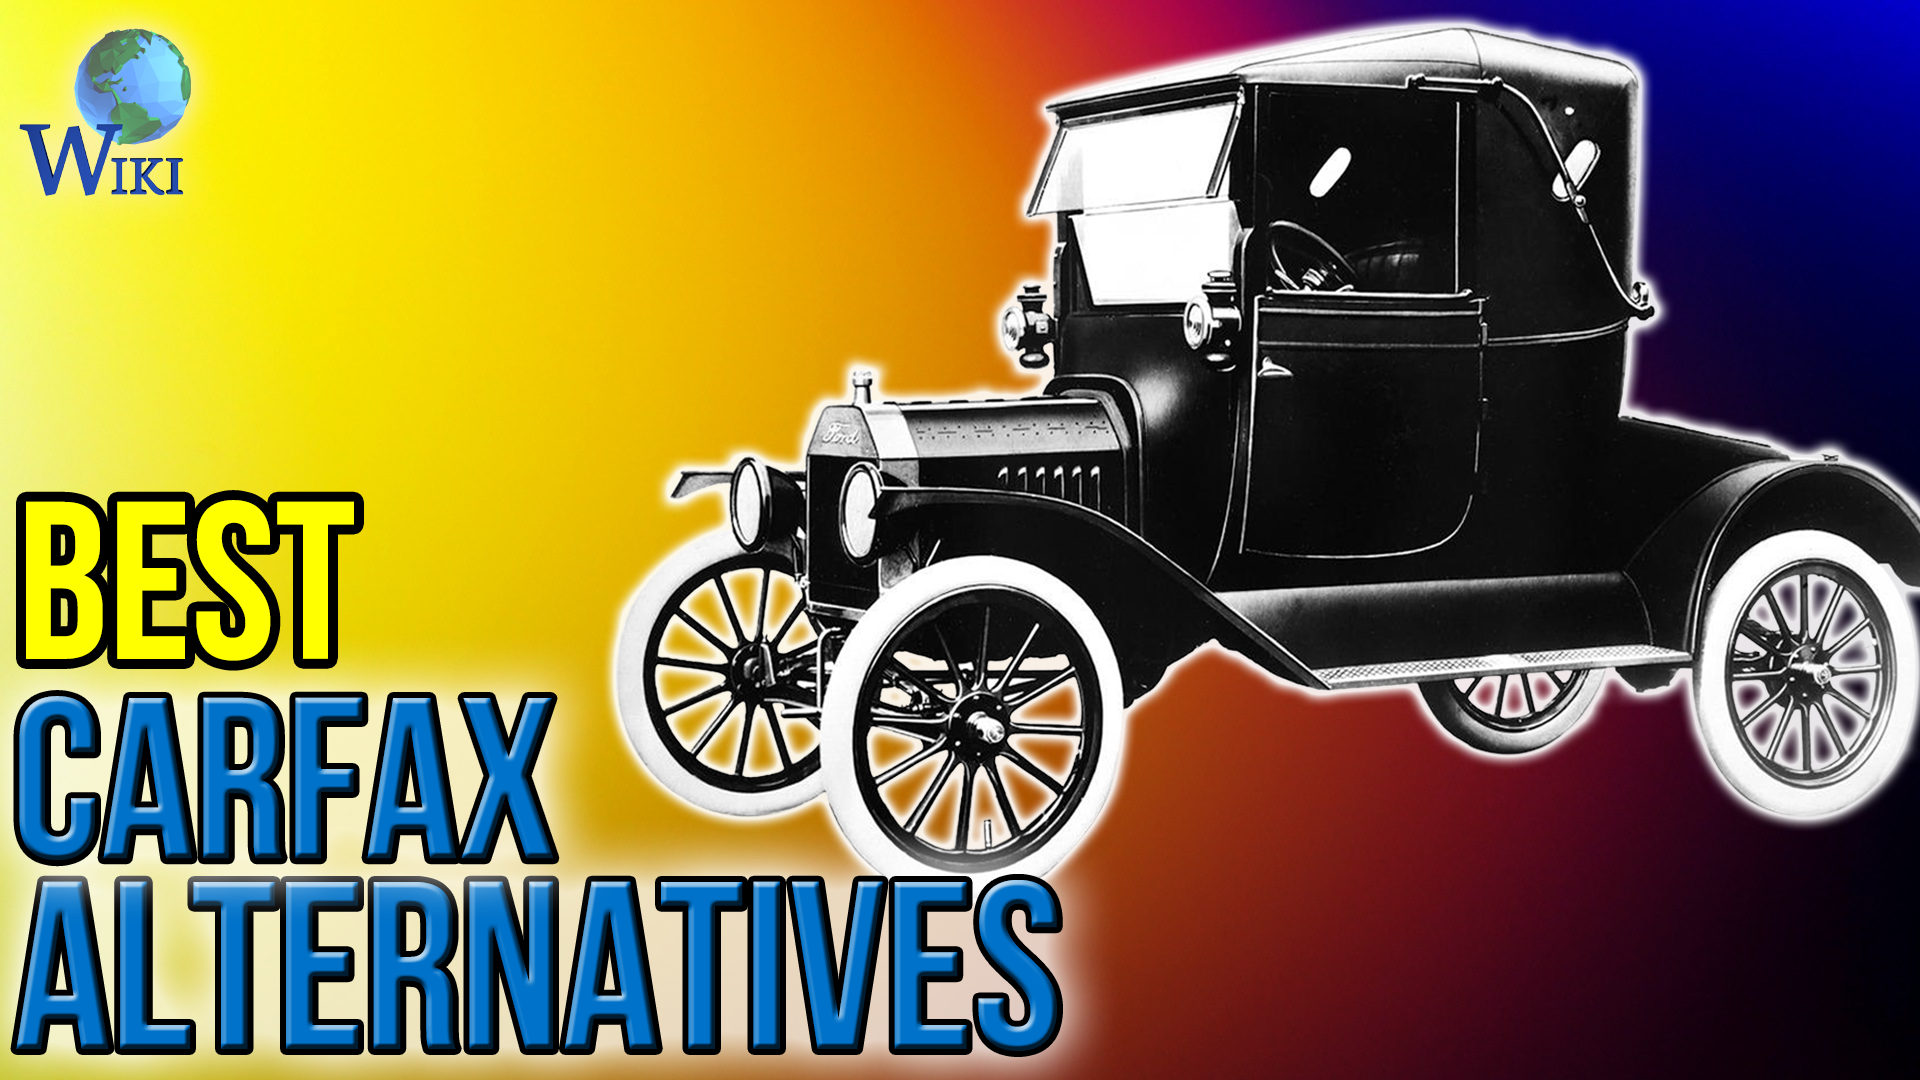 reviewed the 6 best carfax alternatives